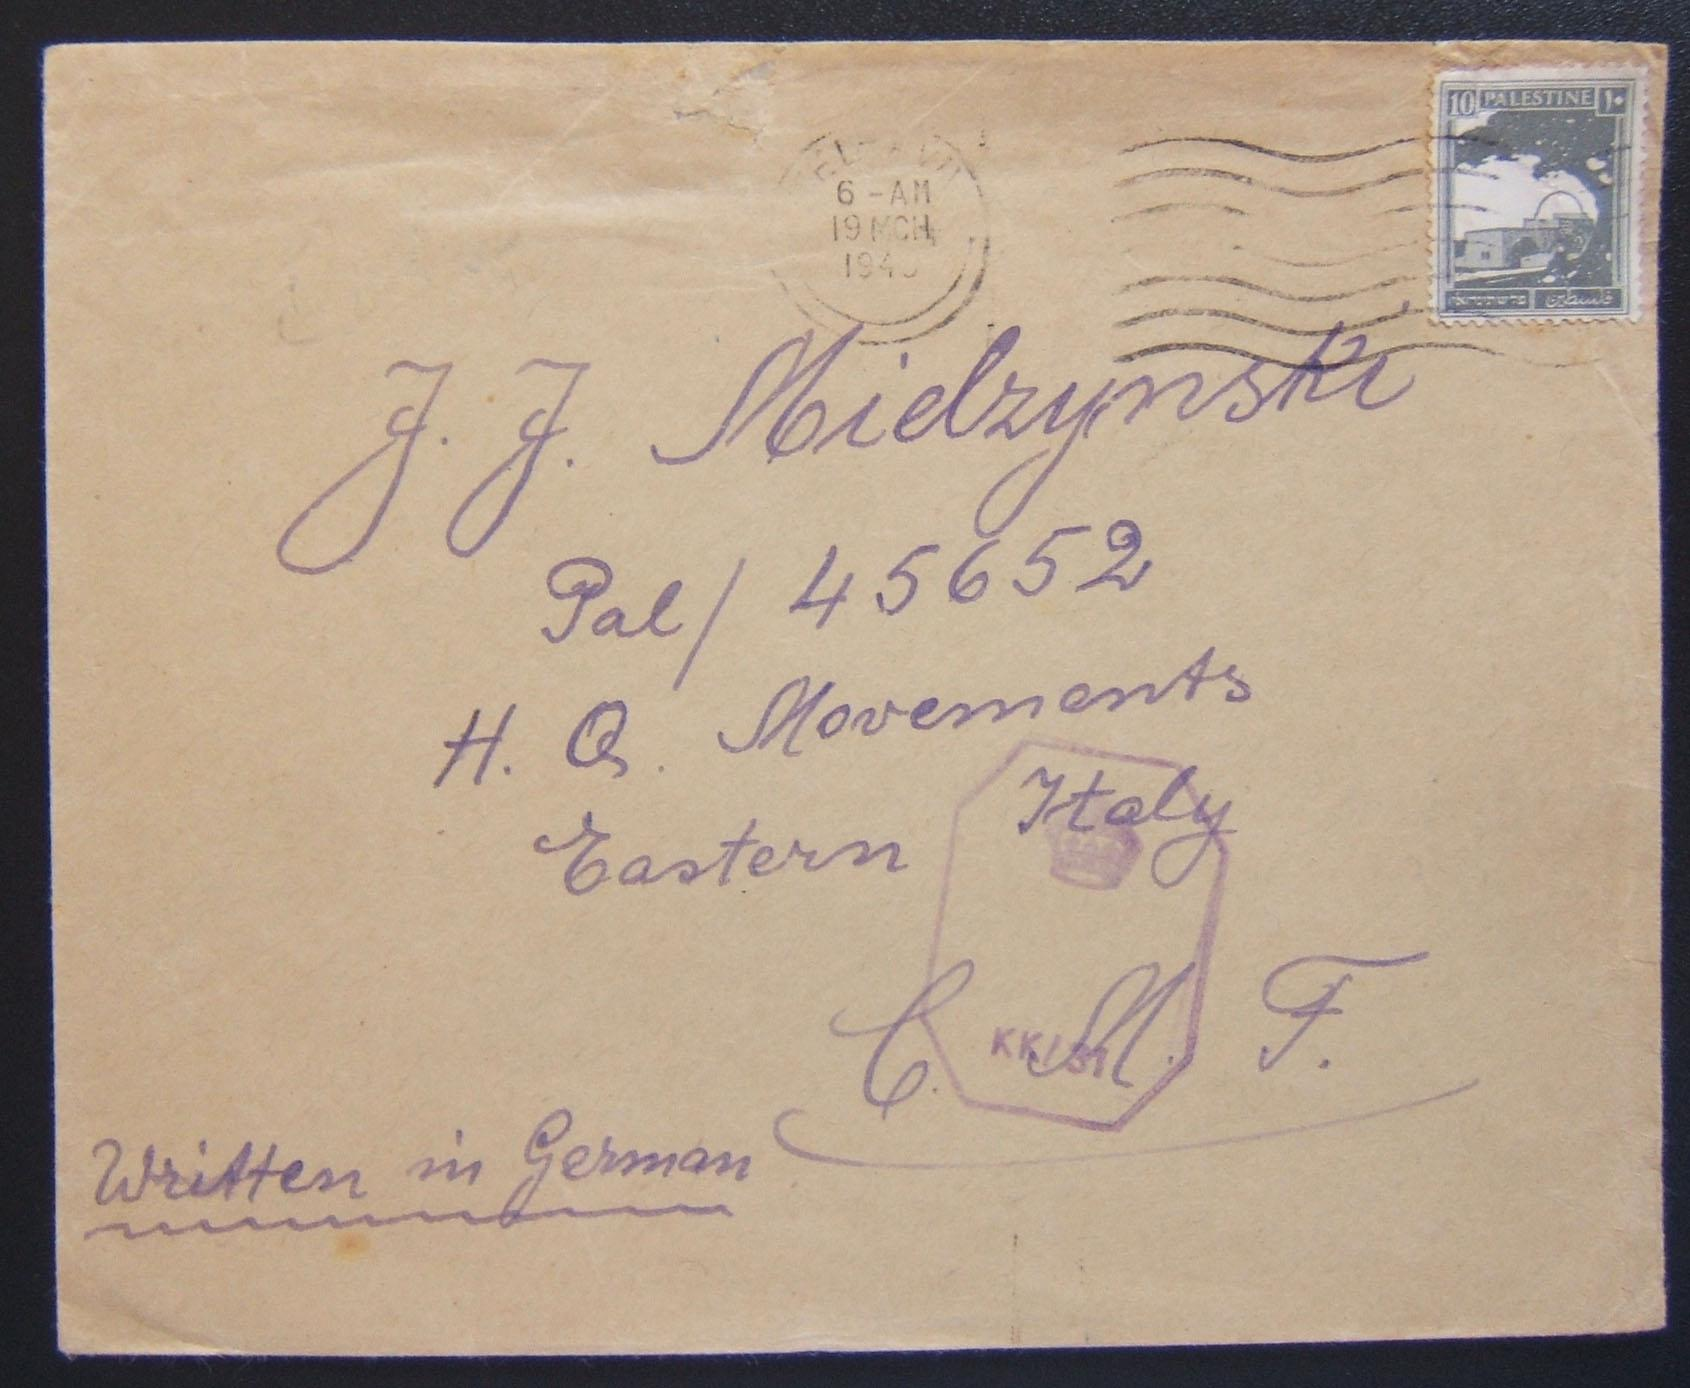 Jewish Brigade Group mail: scarce civilian cover posted to soldier serving in the JBG, ex TEL AVIV to soldier [care of] Headquarters Movements - Eastern Italy (of the Central Medit